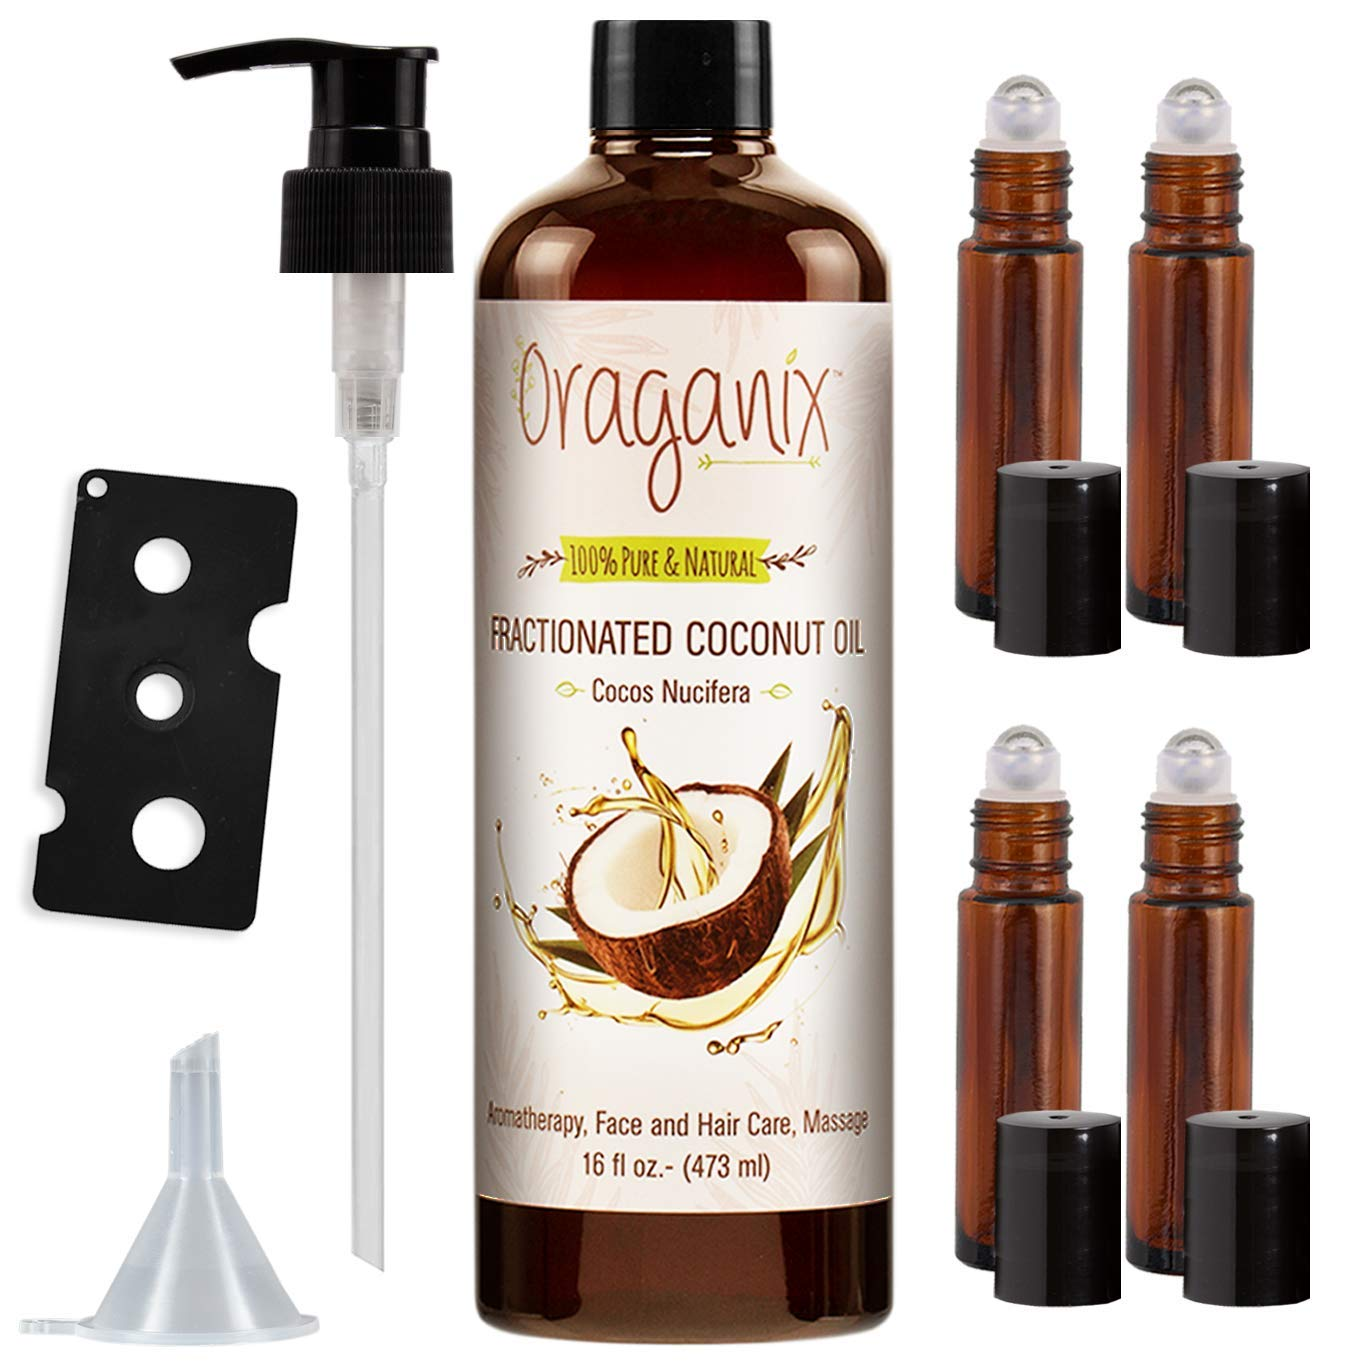 Oraganix Fractionated Coconut Oil with Roller Bottles -100% Pure Natural 16 Oz Coconut Oil, 2ml Essential Oil Roller Bottles, Caps, Funnel and Bottle Opener - for Massage Oil, Skin and Hair Care